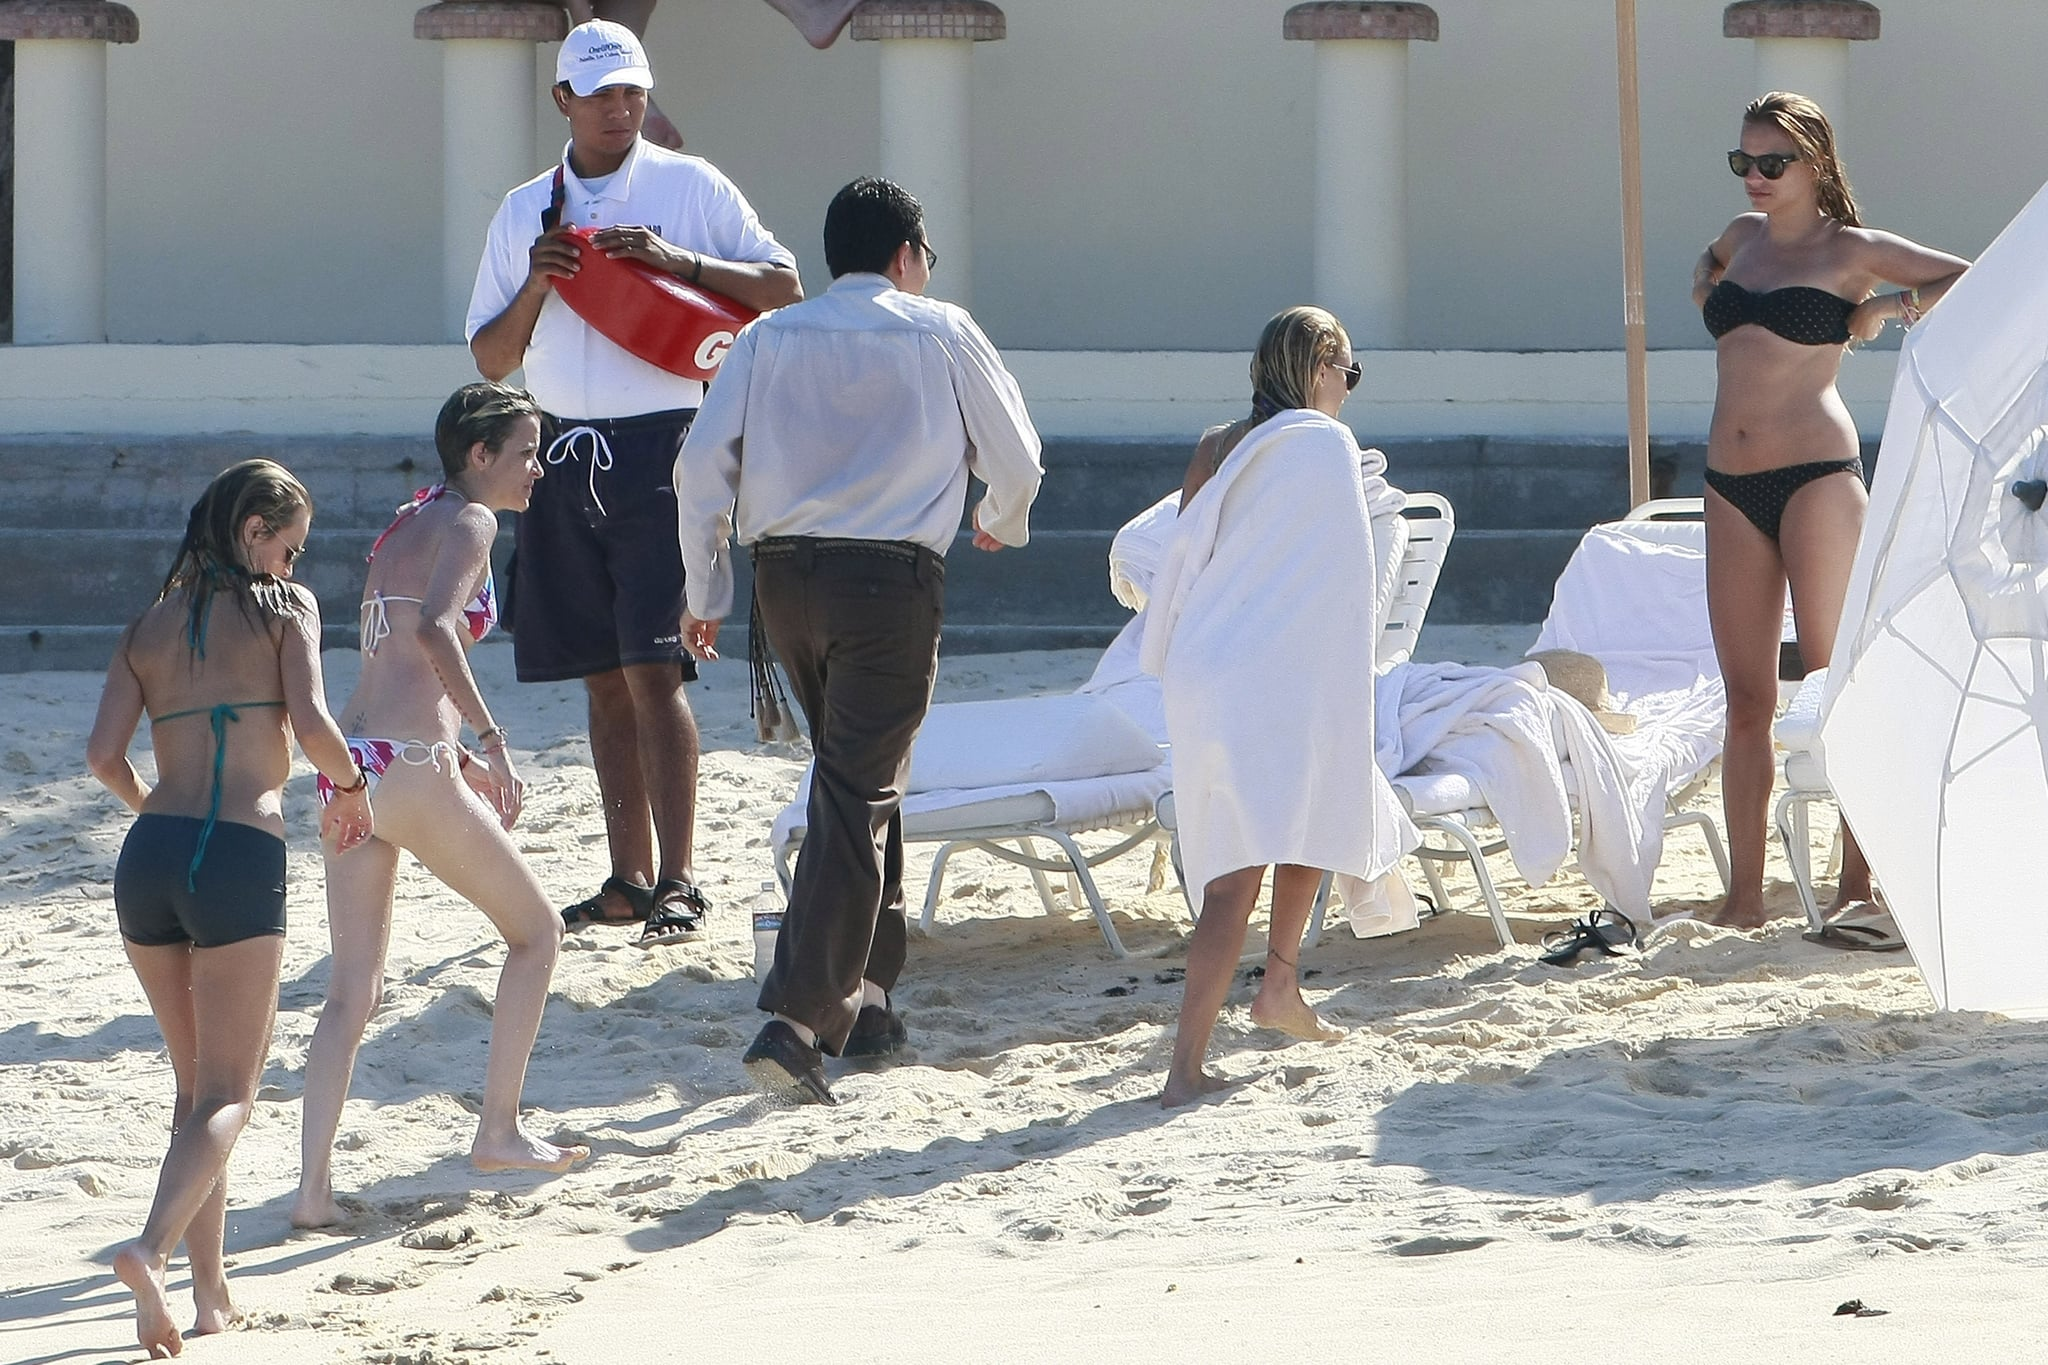 Nicole Richie put on a towel.